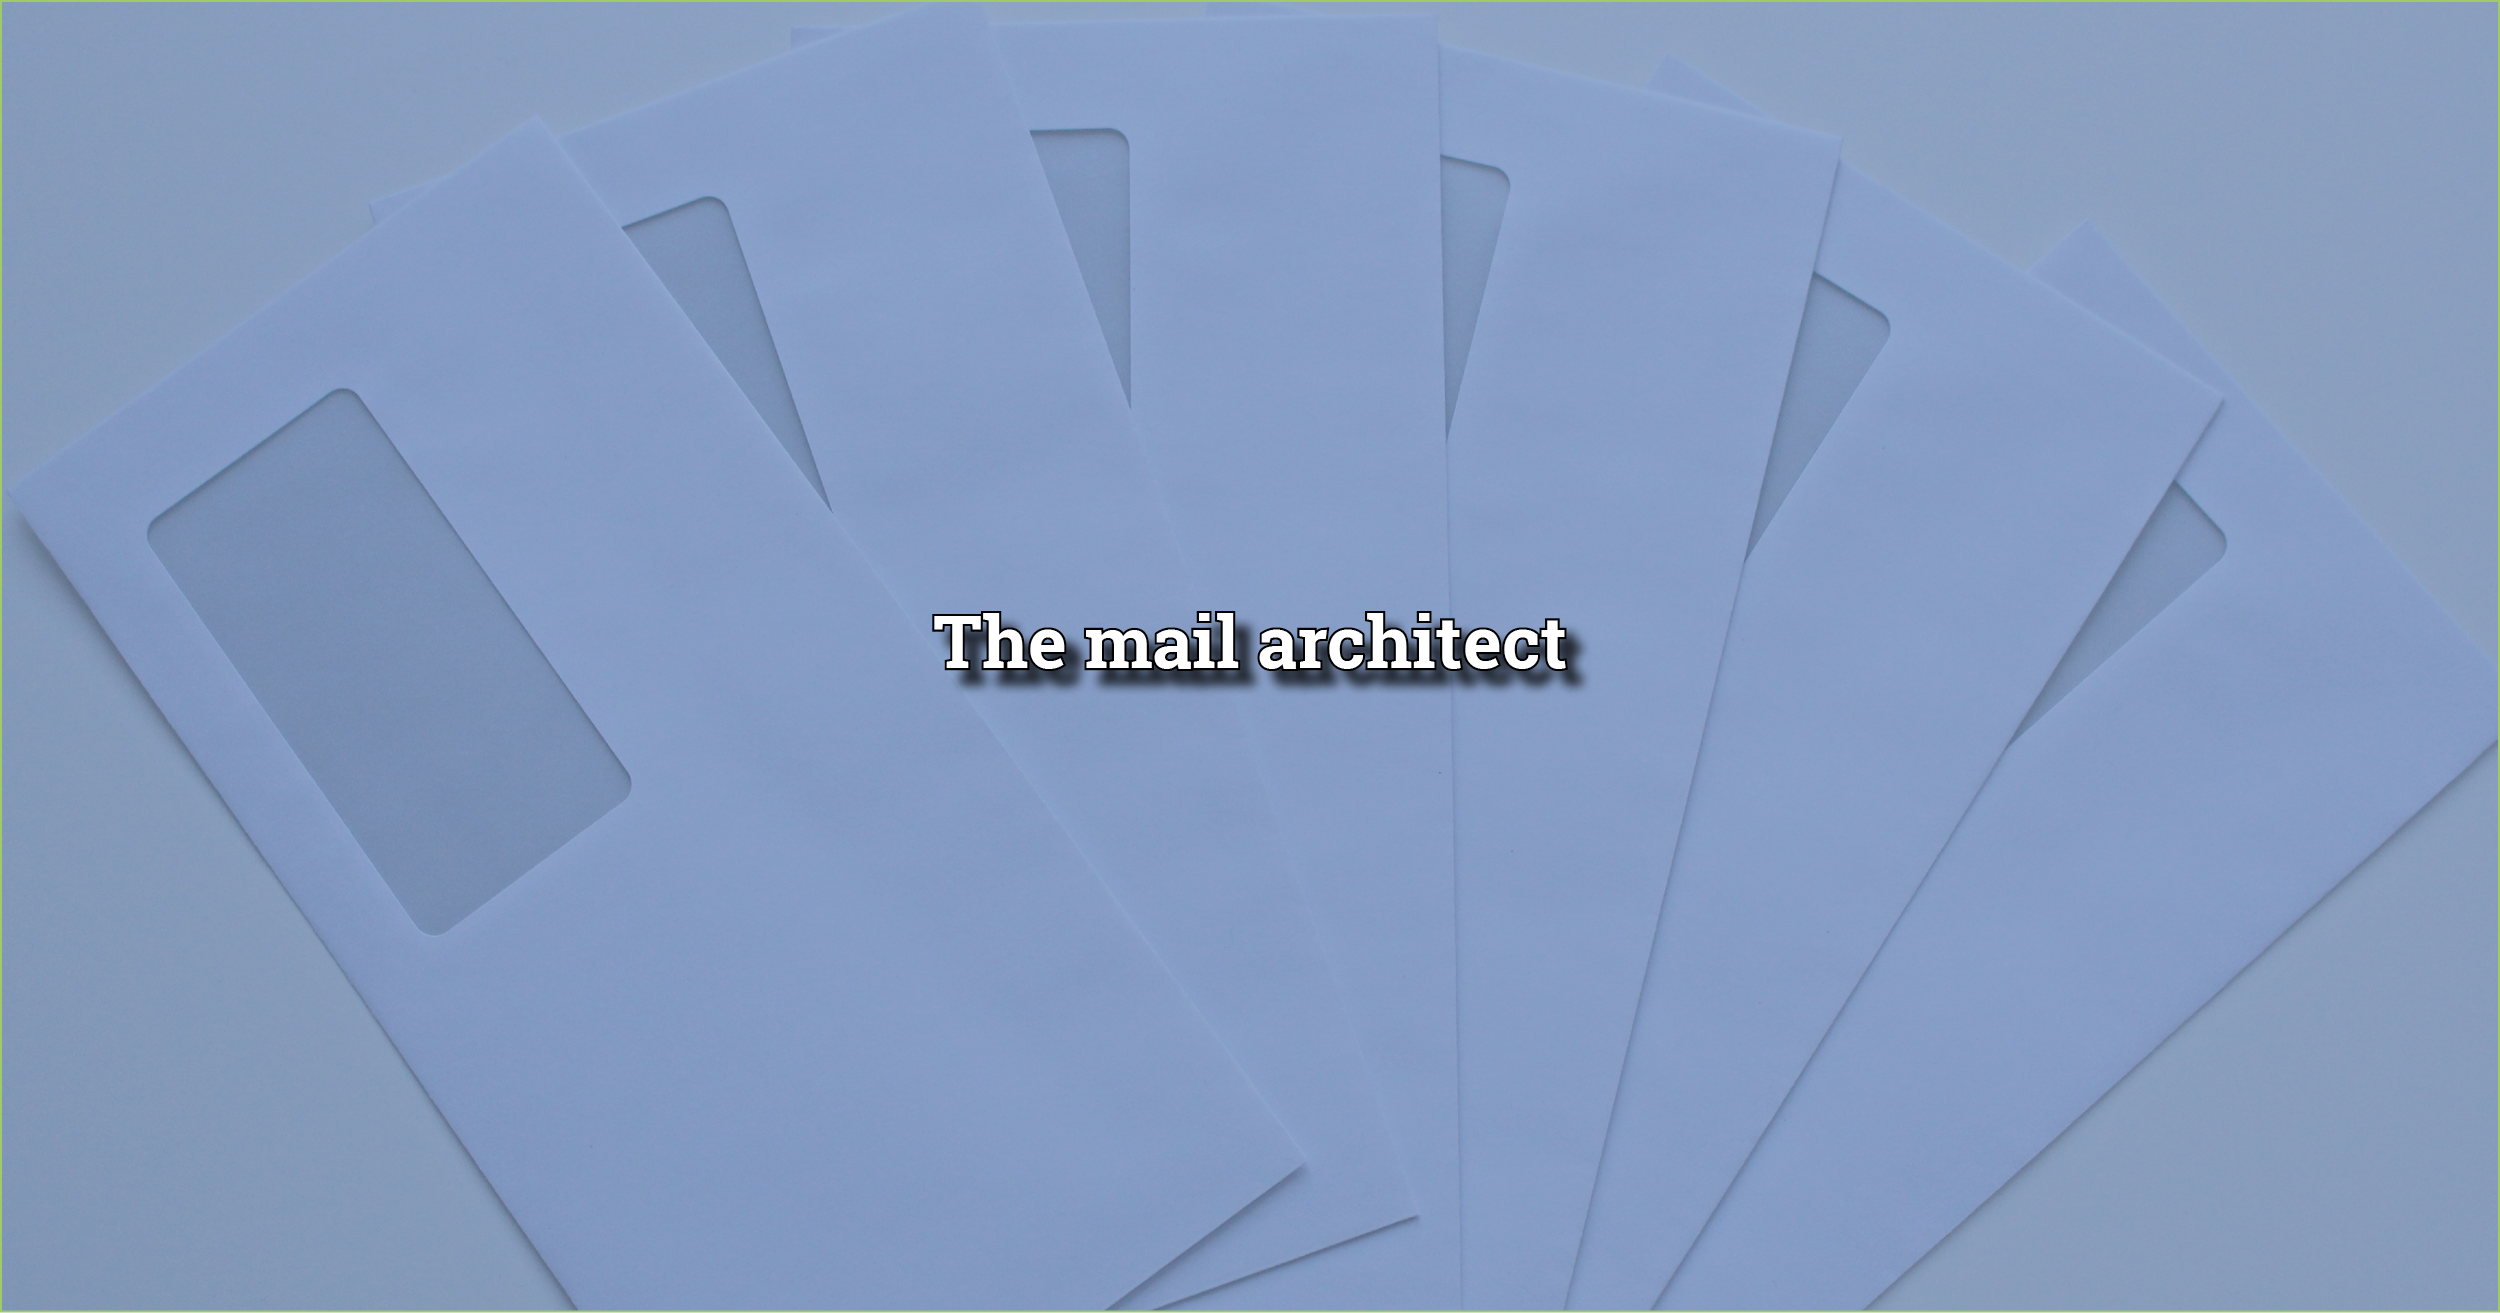 The mail Architect is used as an example to showcase what it means to be an evolutionary architect